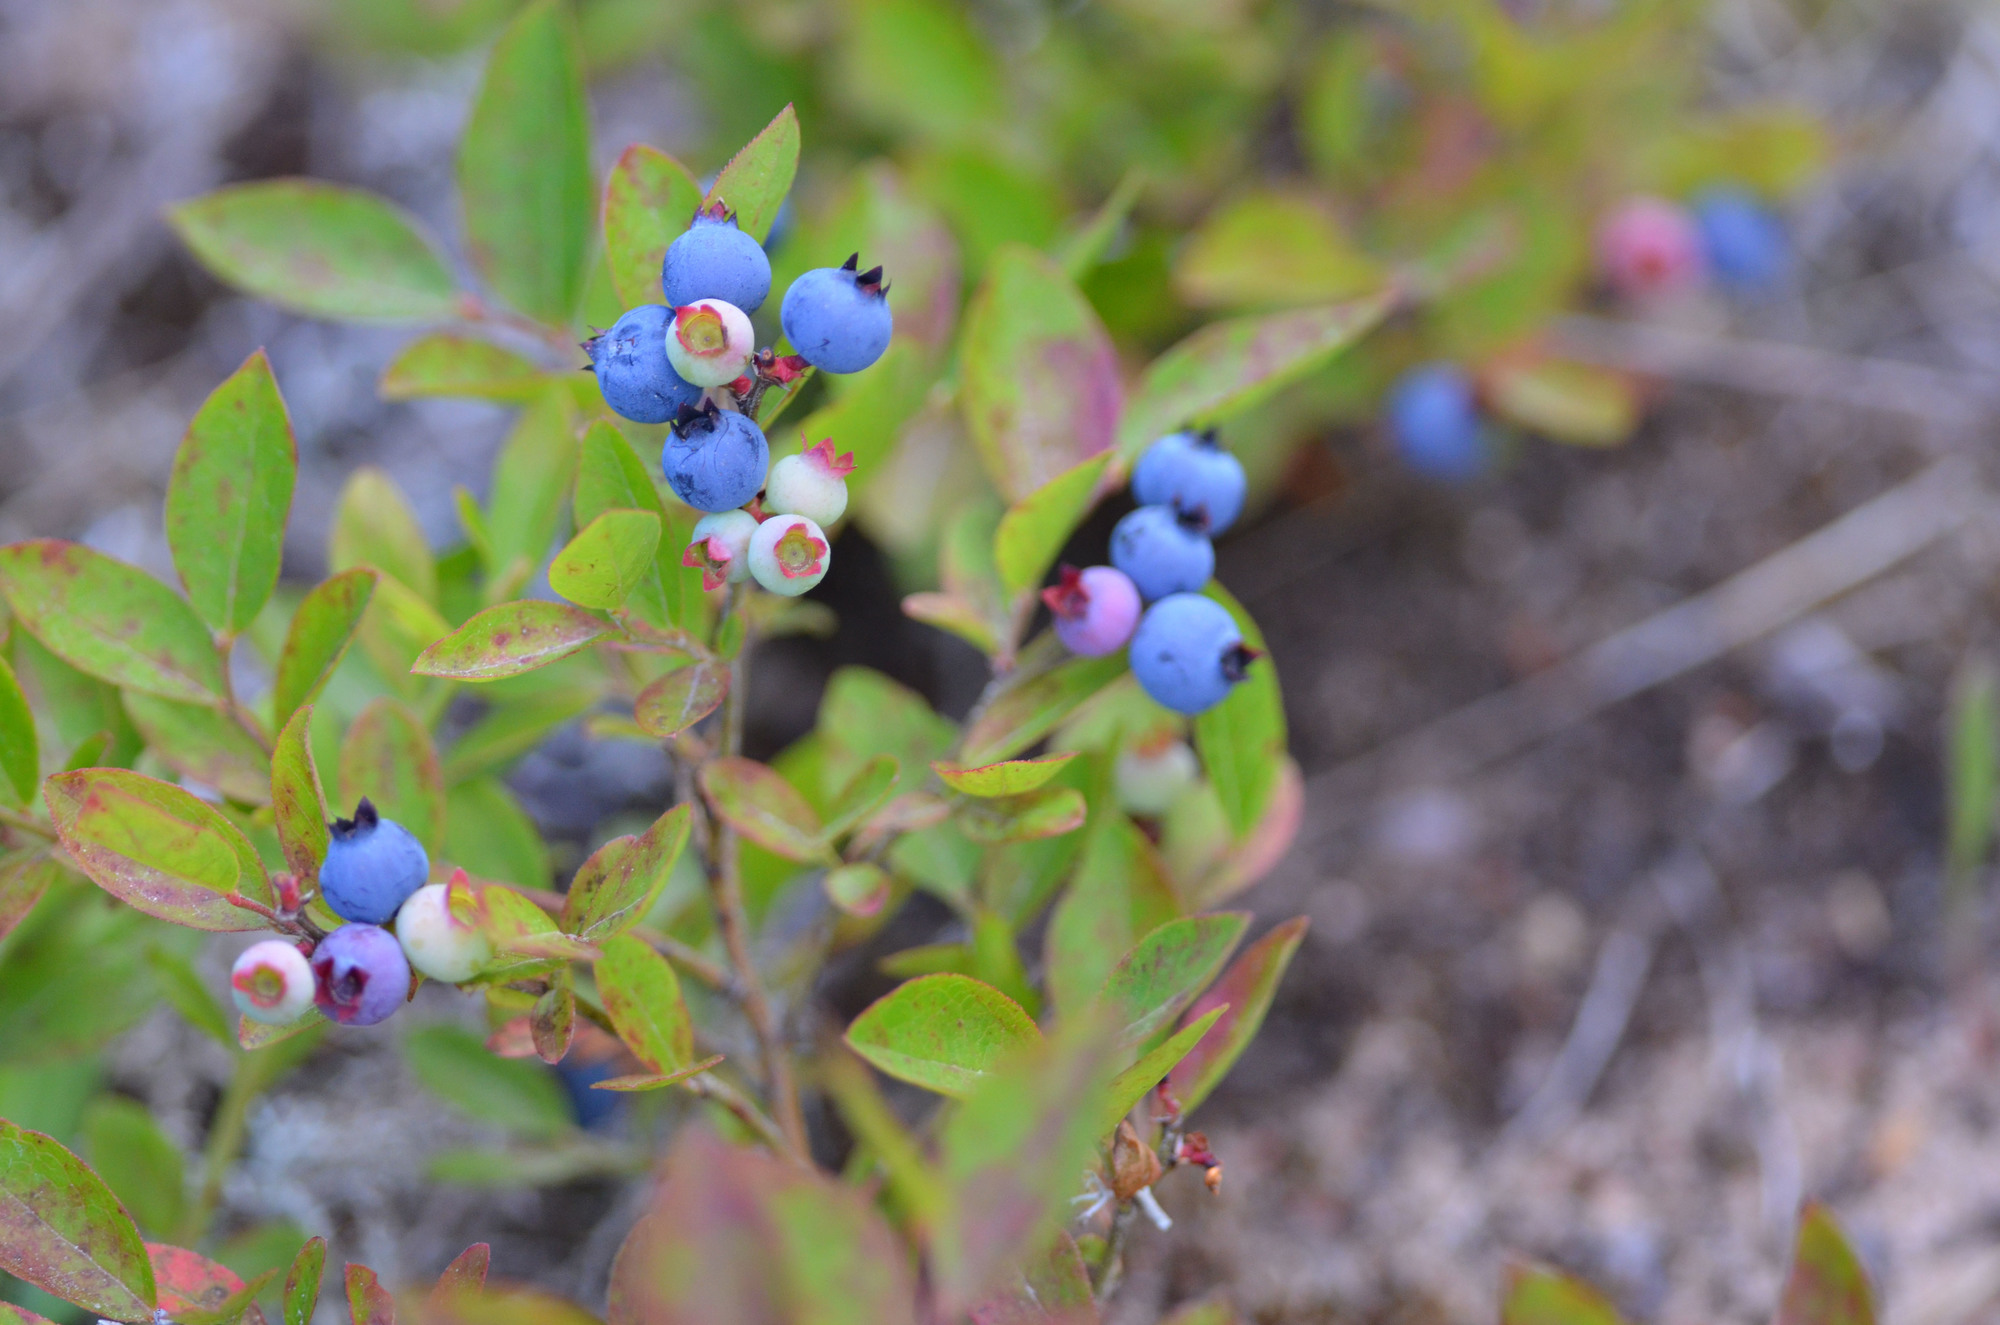 Blueberries are one plant species typically found in jack pine habitat.